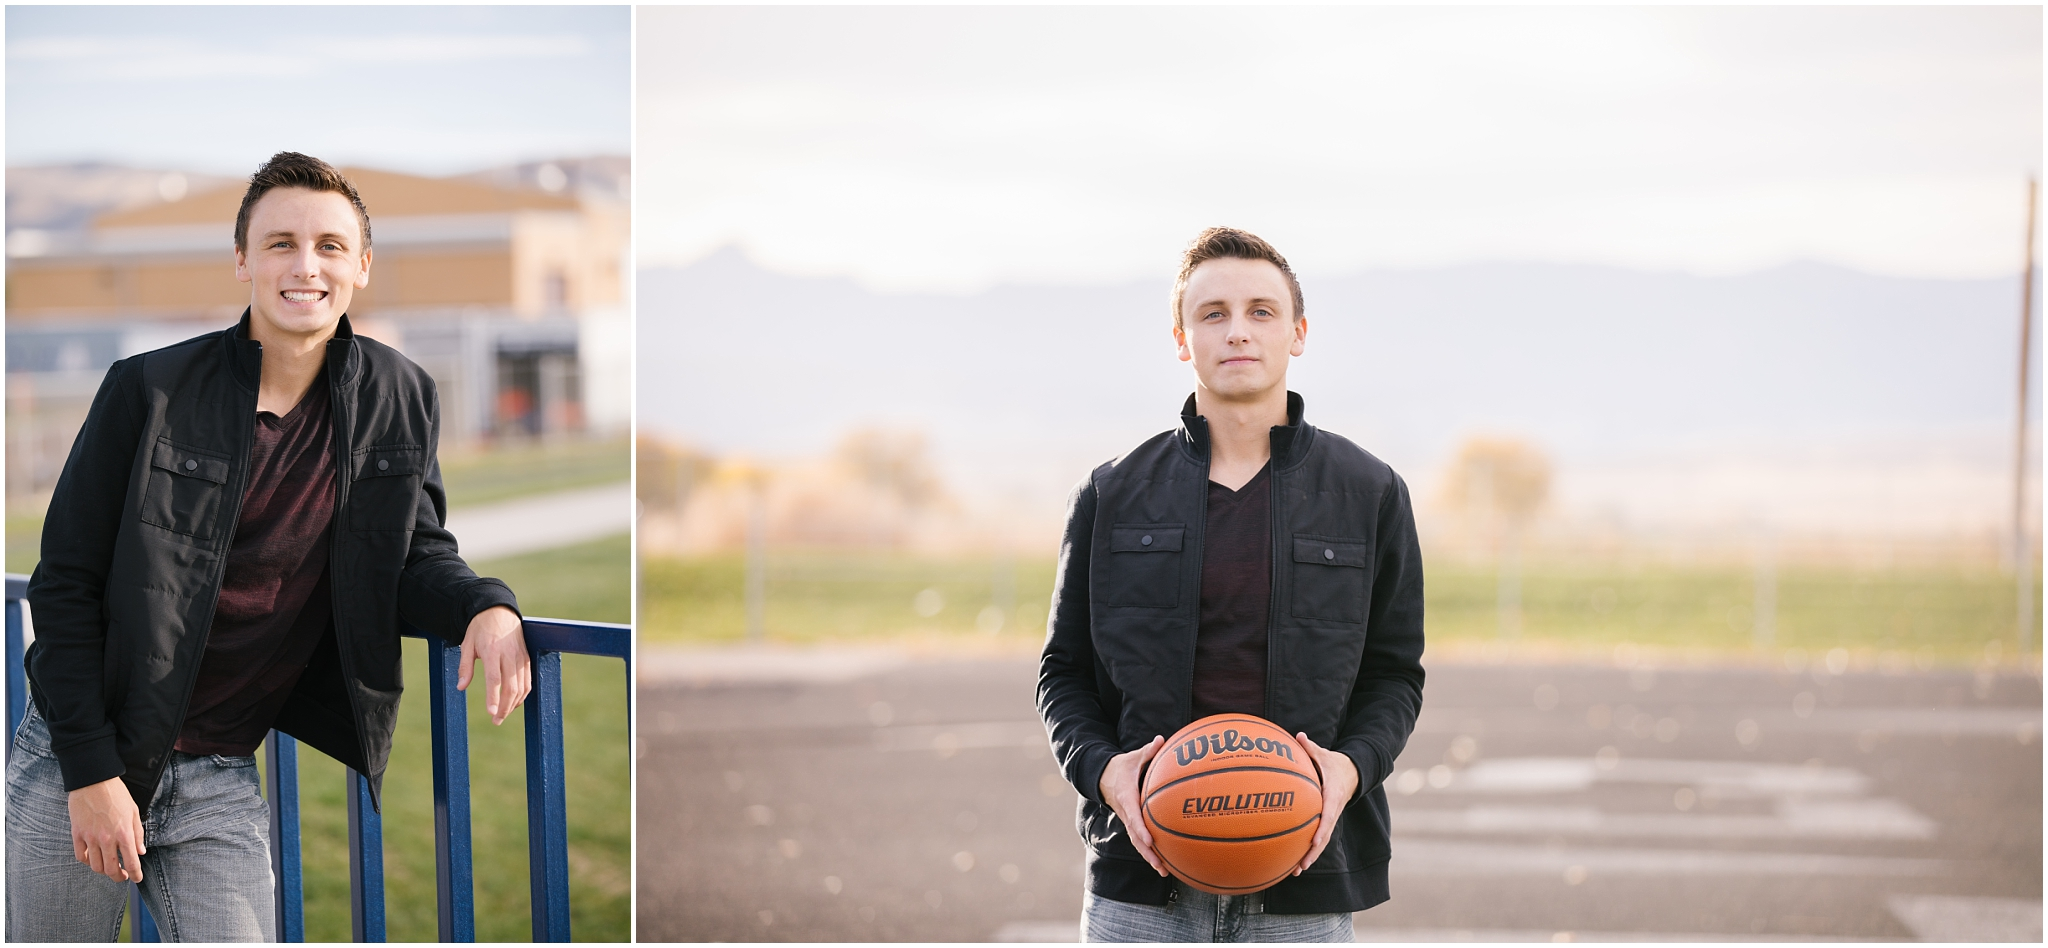 Marcus--38_Lizzie-B-Imagery-Utah-Senior-Photographer-Salt-Lake-City-Park-City-Utah-County.jpg